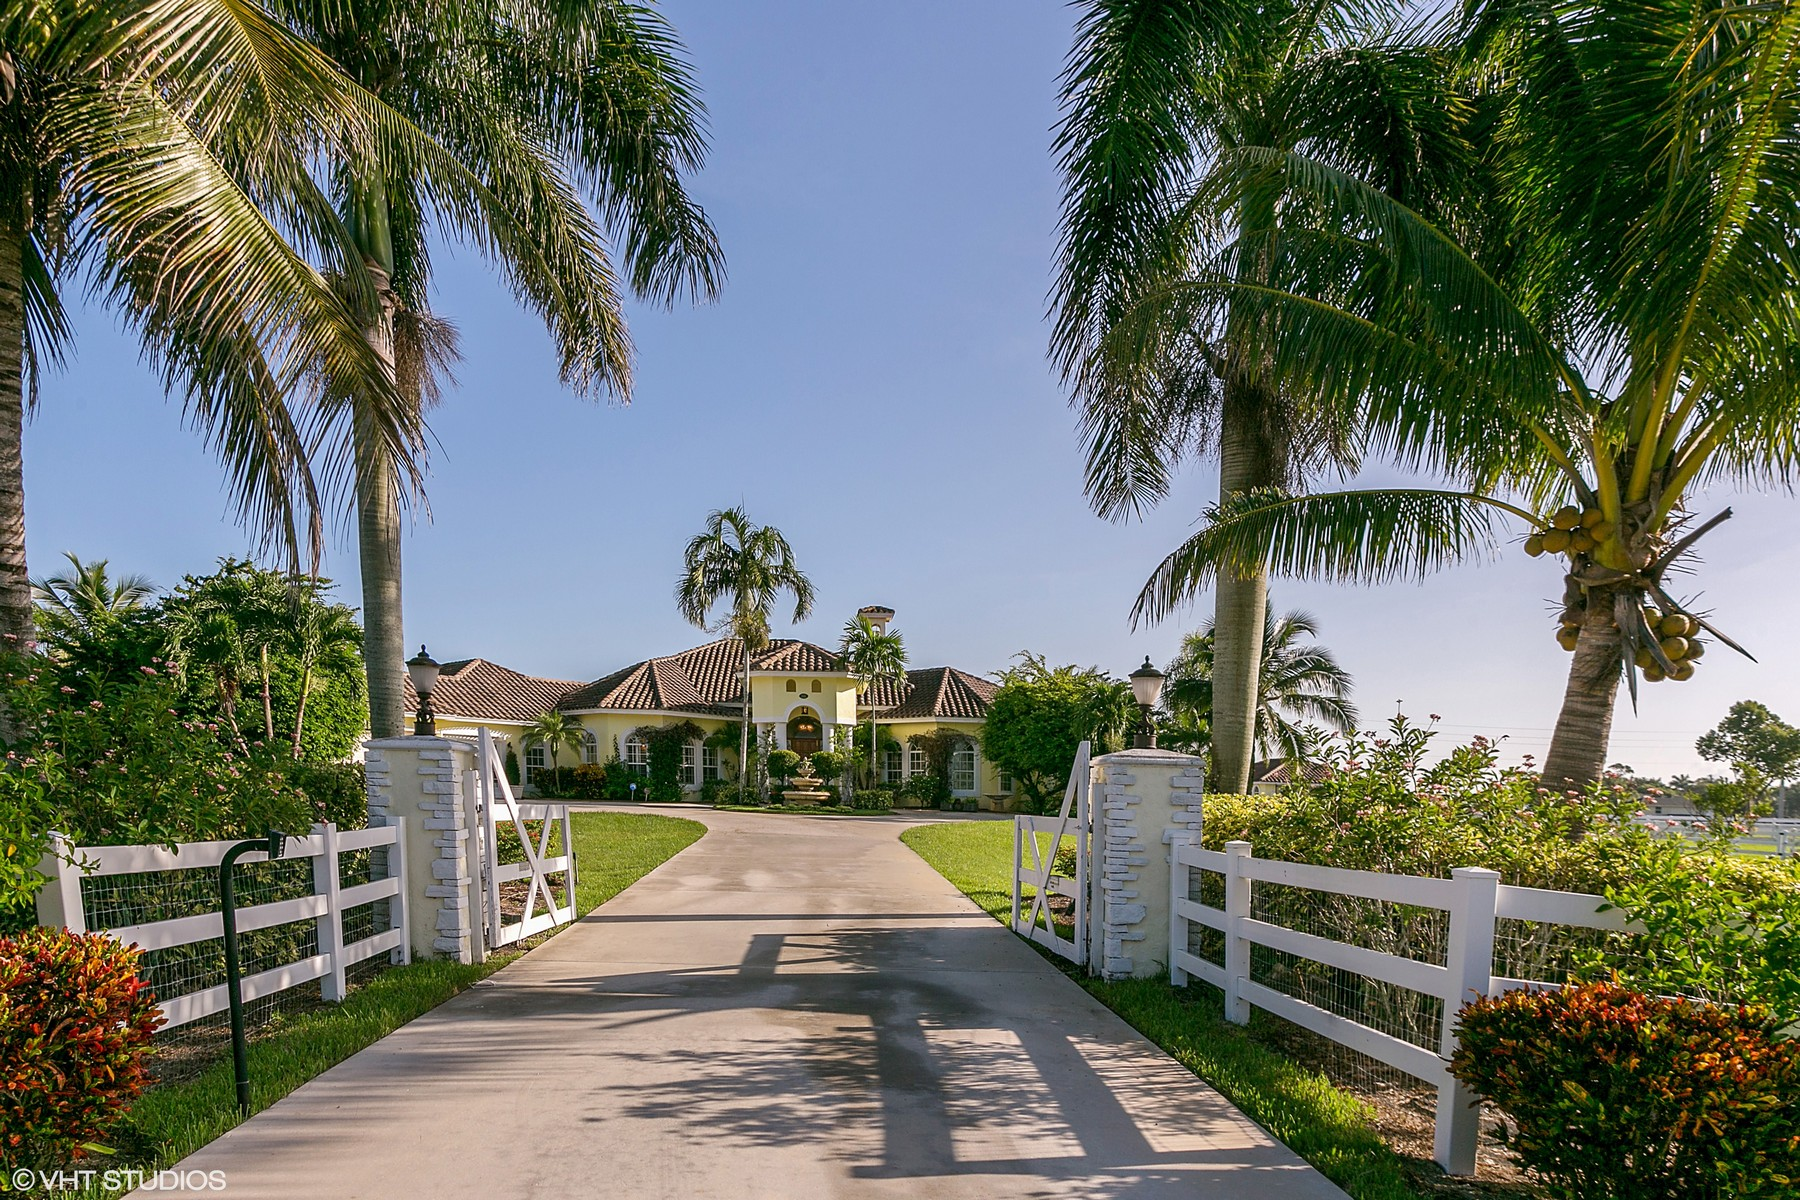 Villa per Vendita alle ore 15411 Palma Lane Palm Beach Point, Wellington, Florida, 33414 Stati Uniti